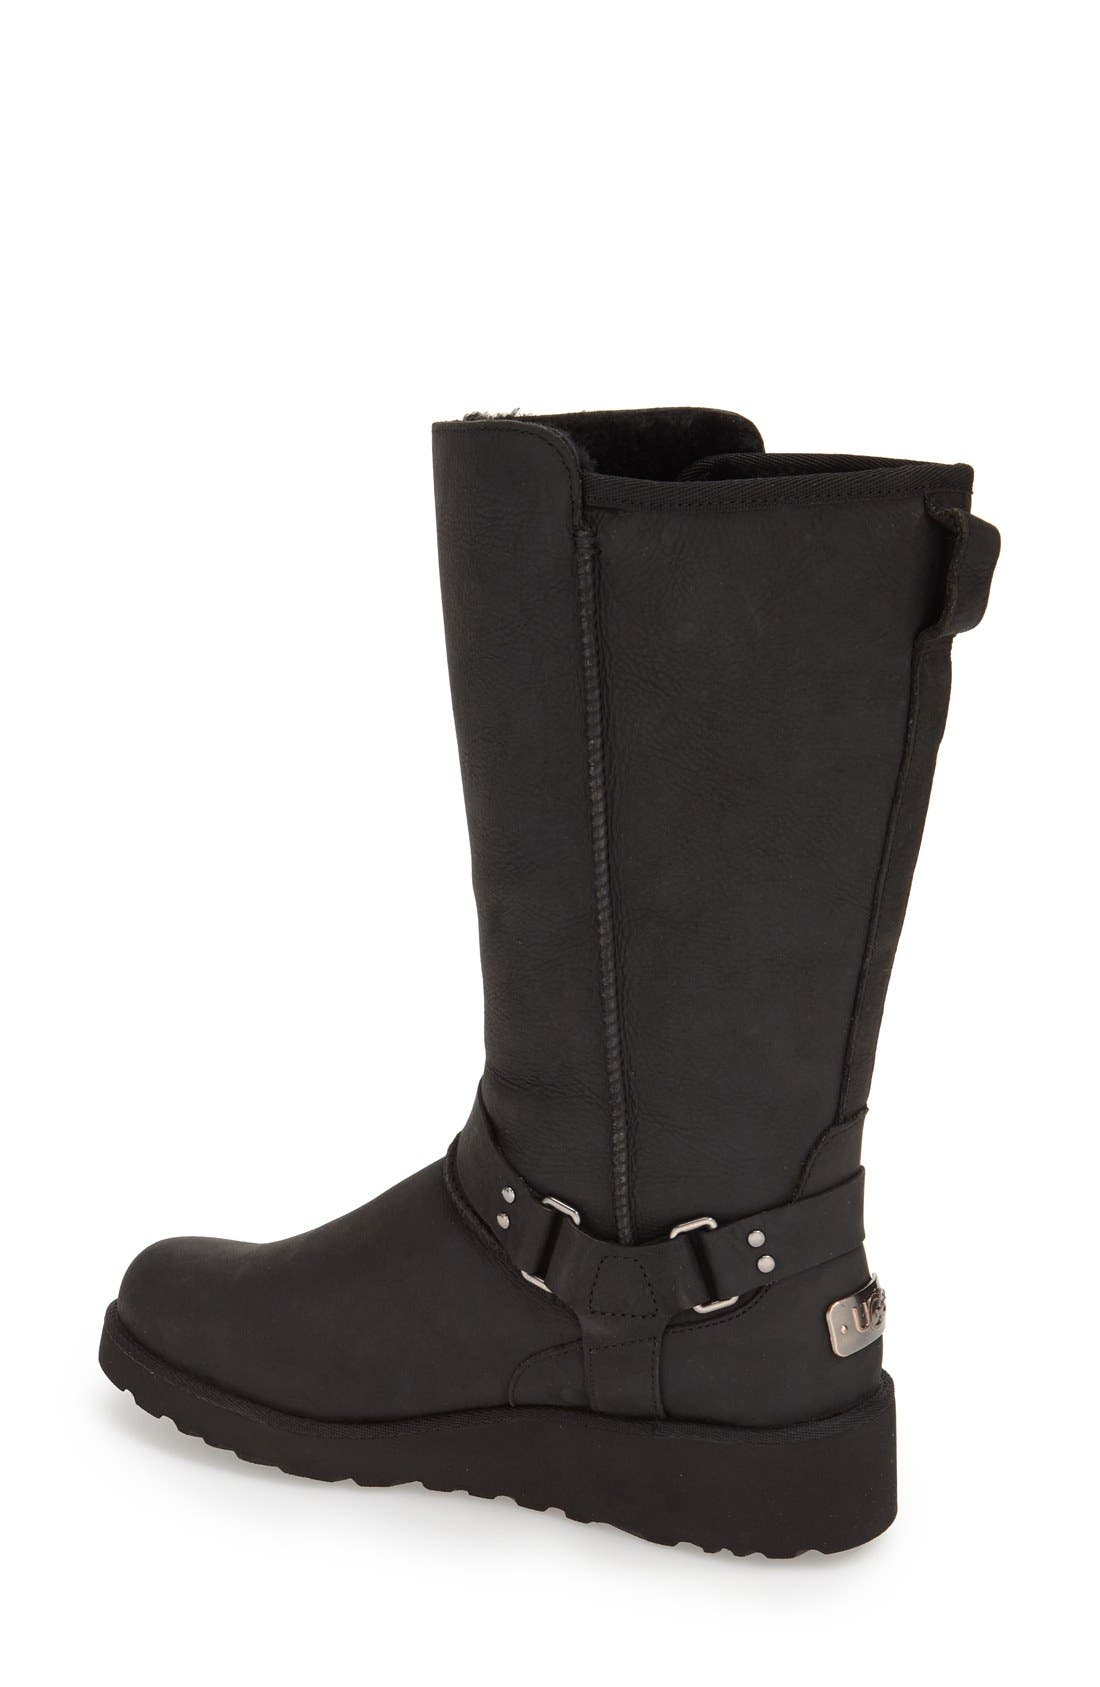 'Jasper' Water Resistant Boot,                             Alternate thumbnail 2, color,                             Black Leather